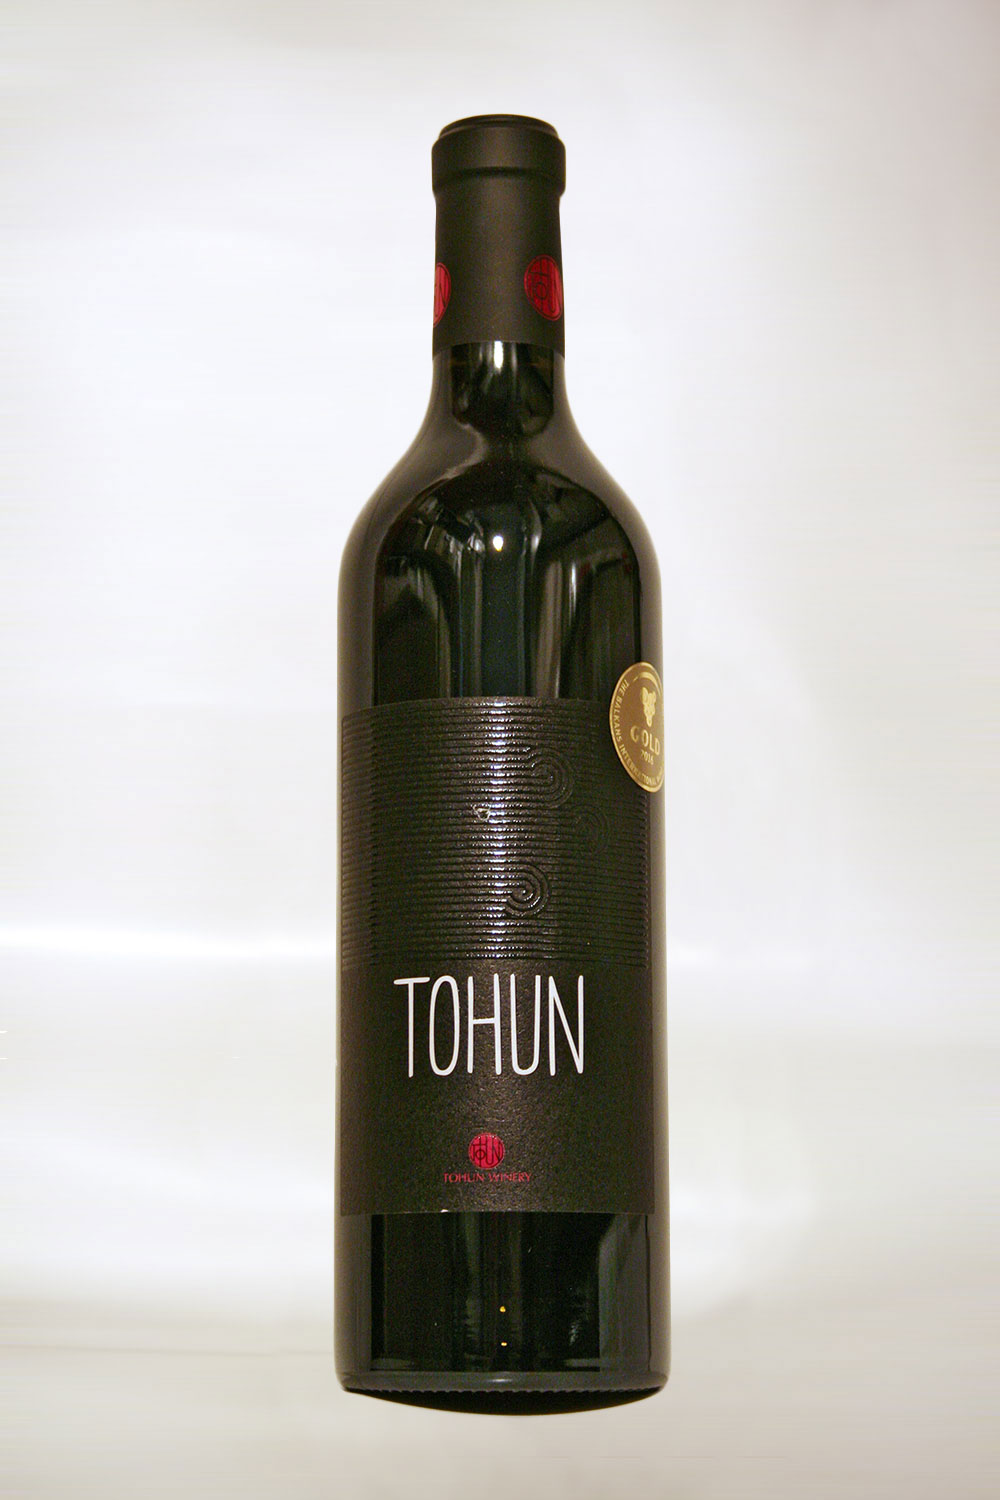 Tohun From Black Sea Coast Red 2013